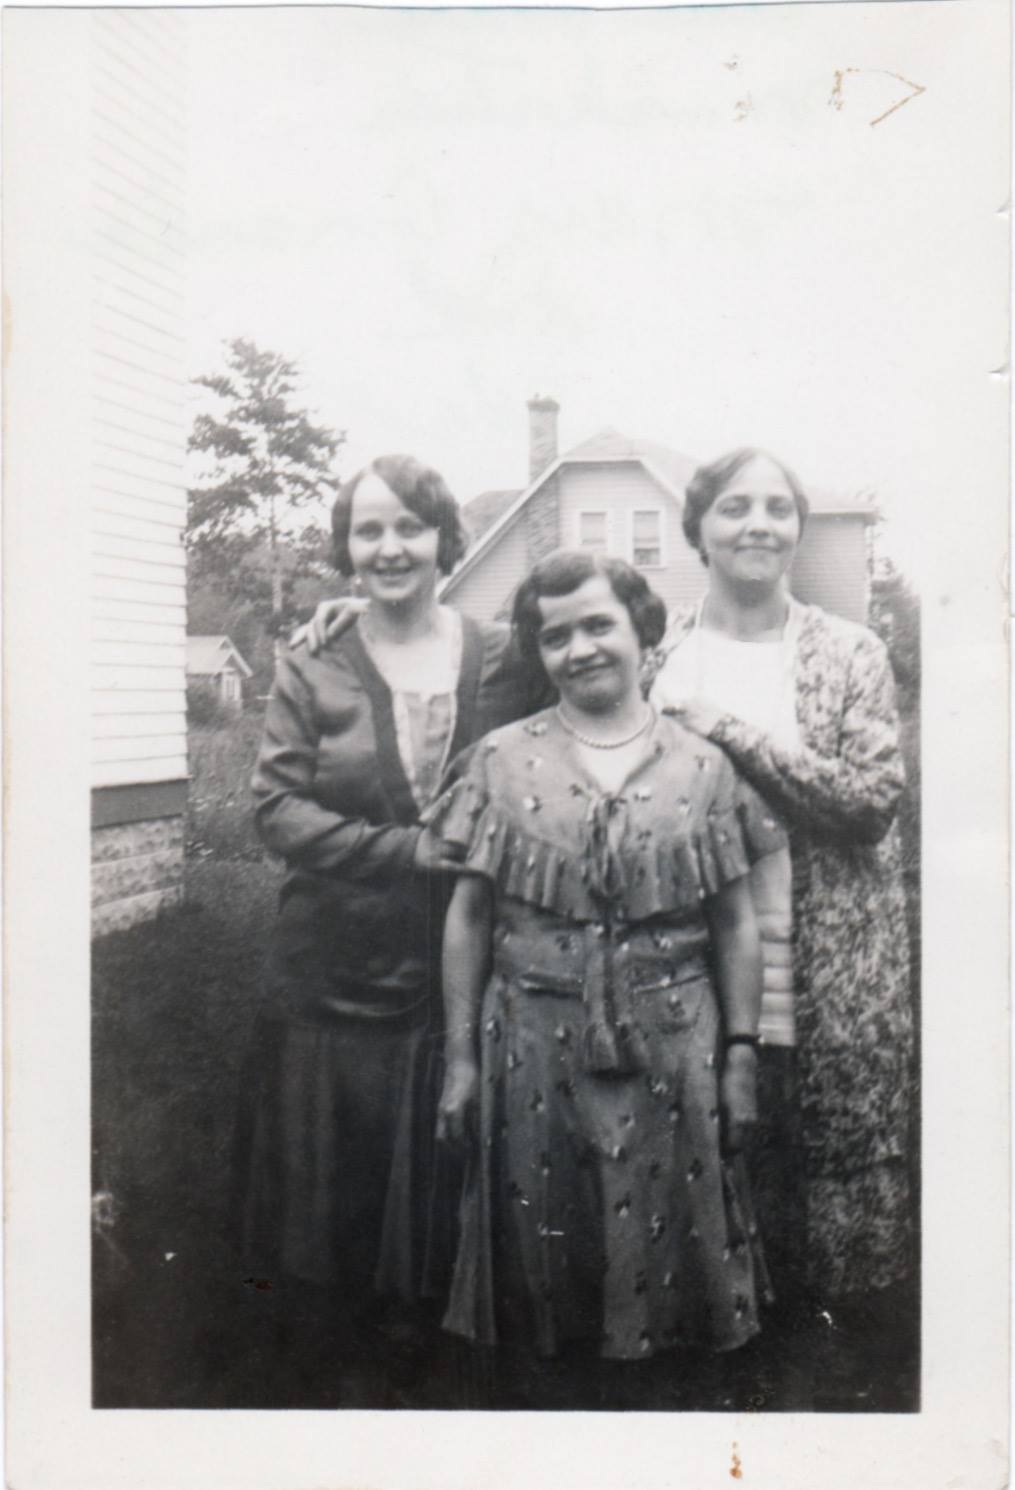 """""""The Three Musketeers. Mary, Amanda, and Ida"""" was written on the back of this photo, probably by my great grandmother, Ida (left). Mary is in the middle and Amanda the right."""